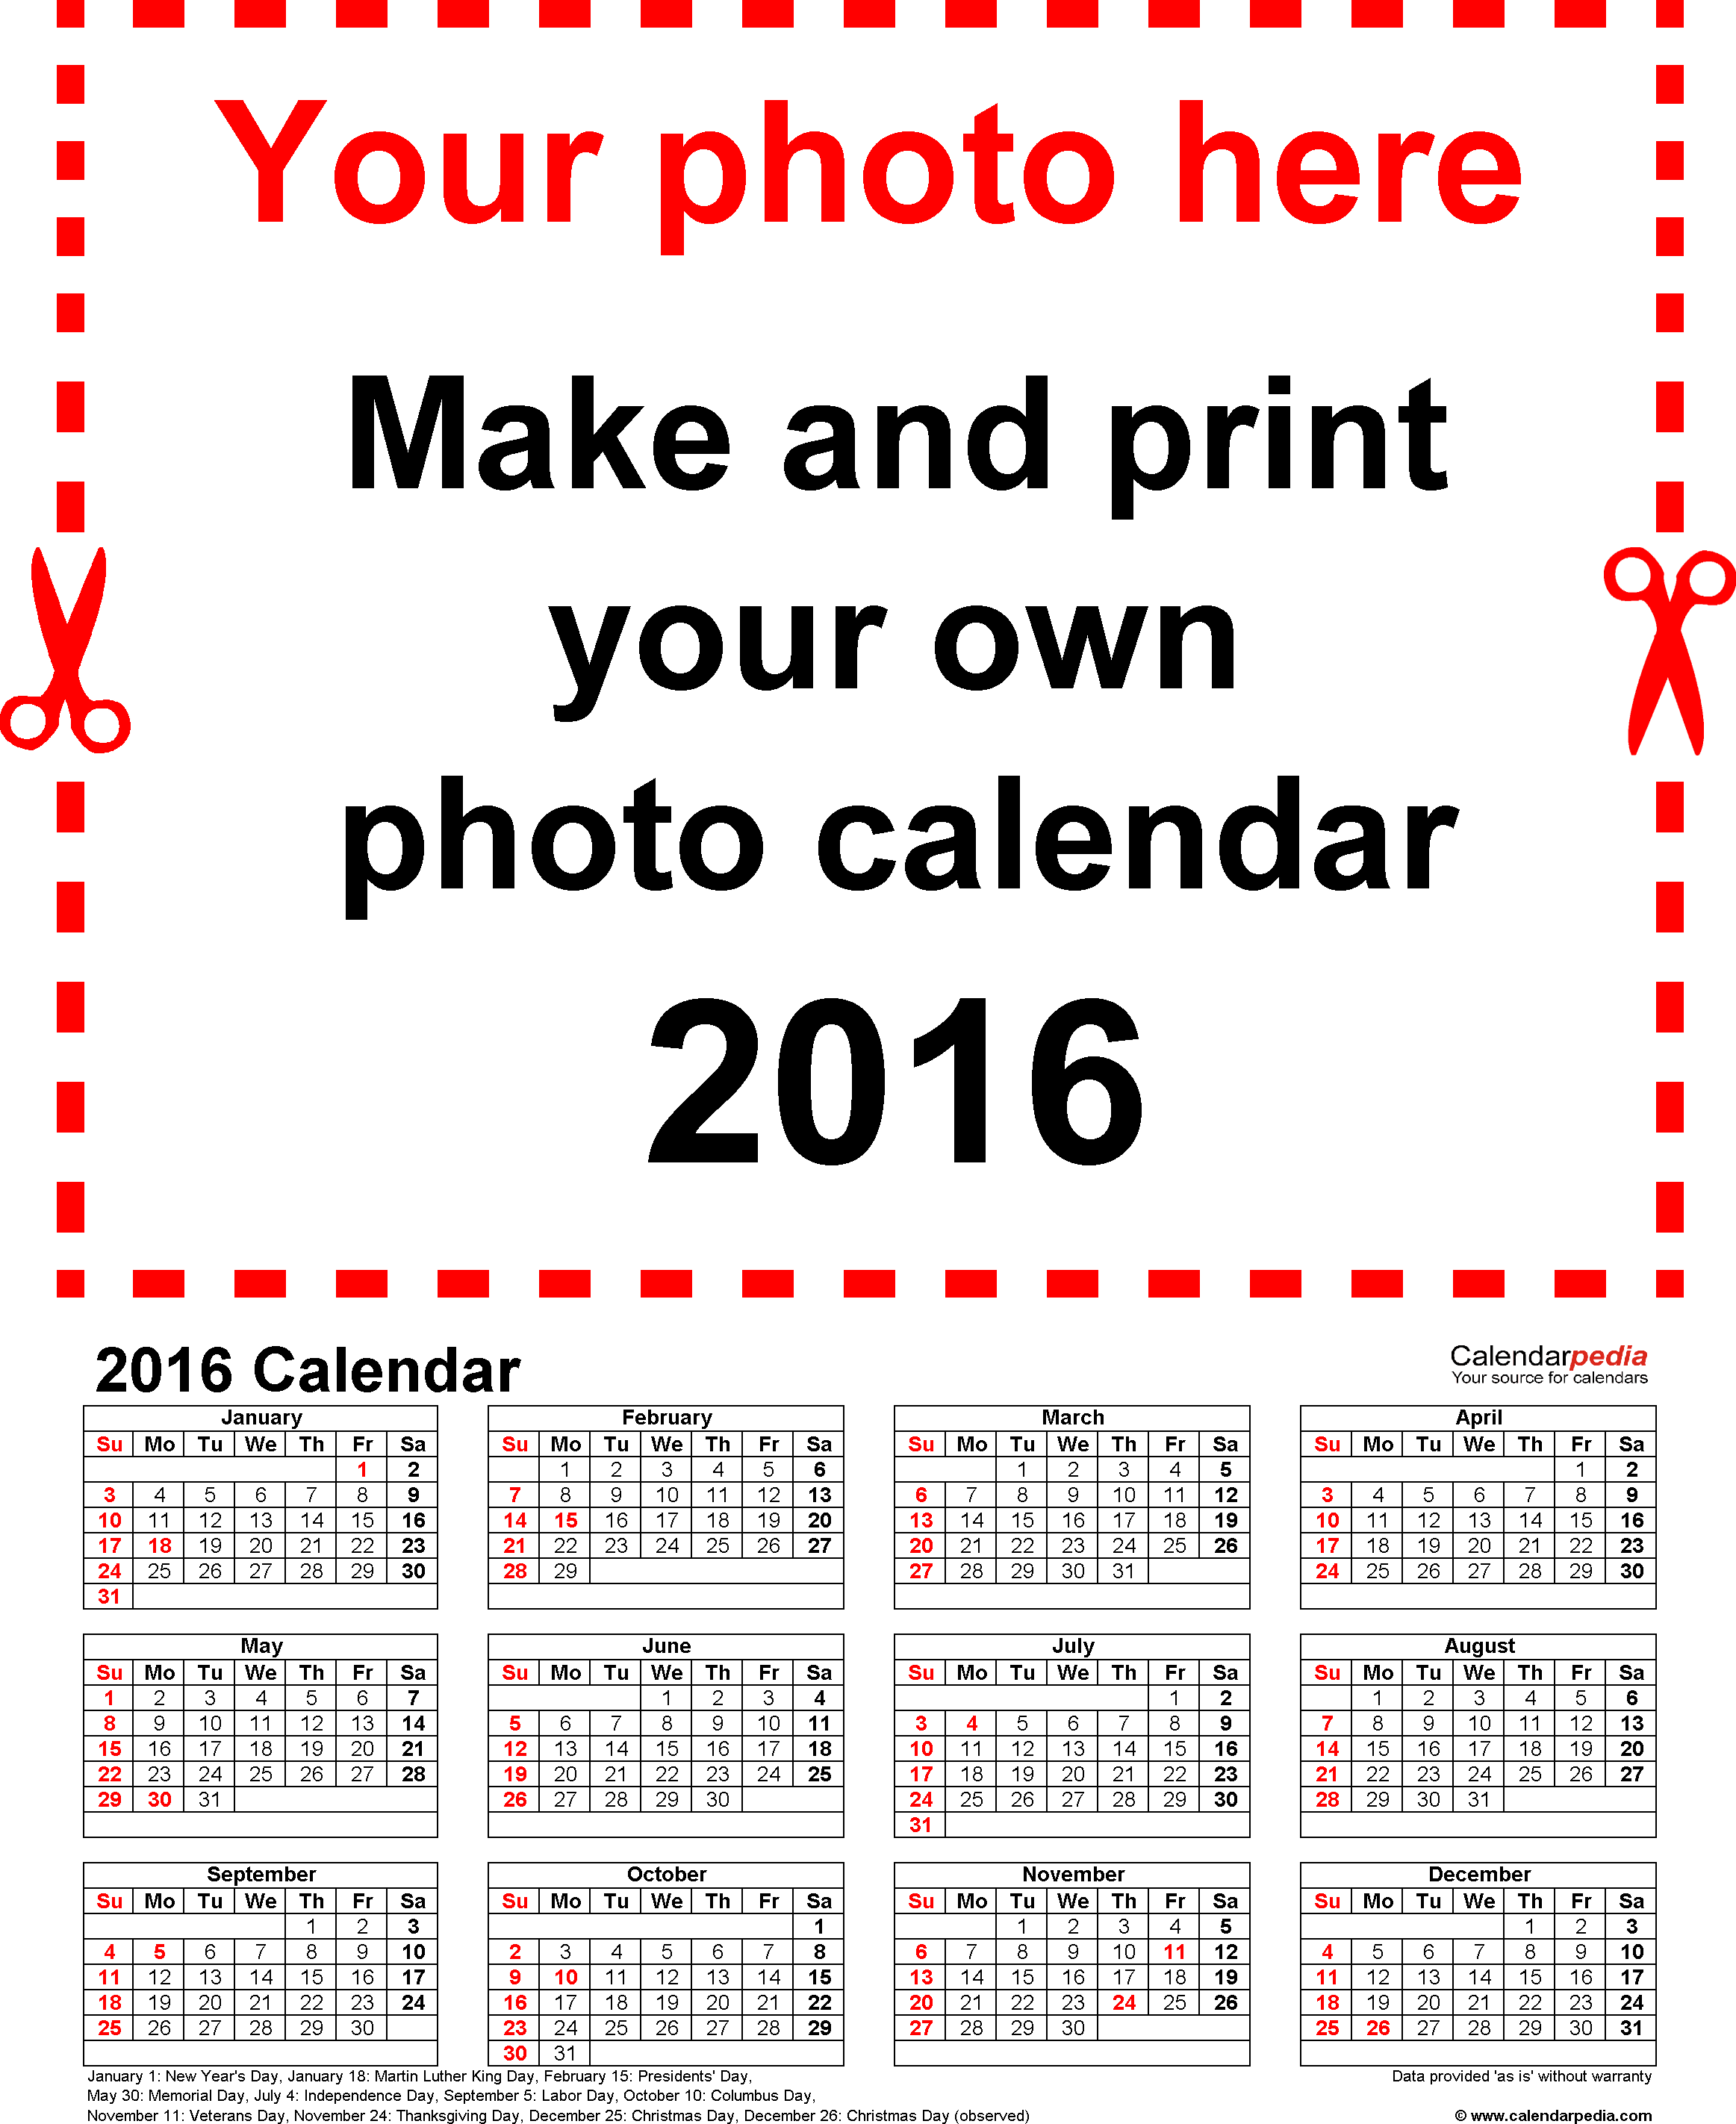 Template 4: Photo calendar 2016 for PDF, portrait format, whole year on one page